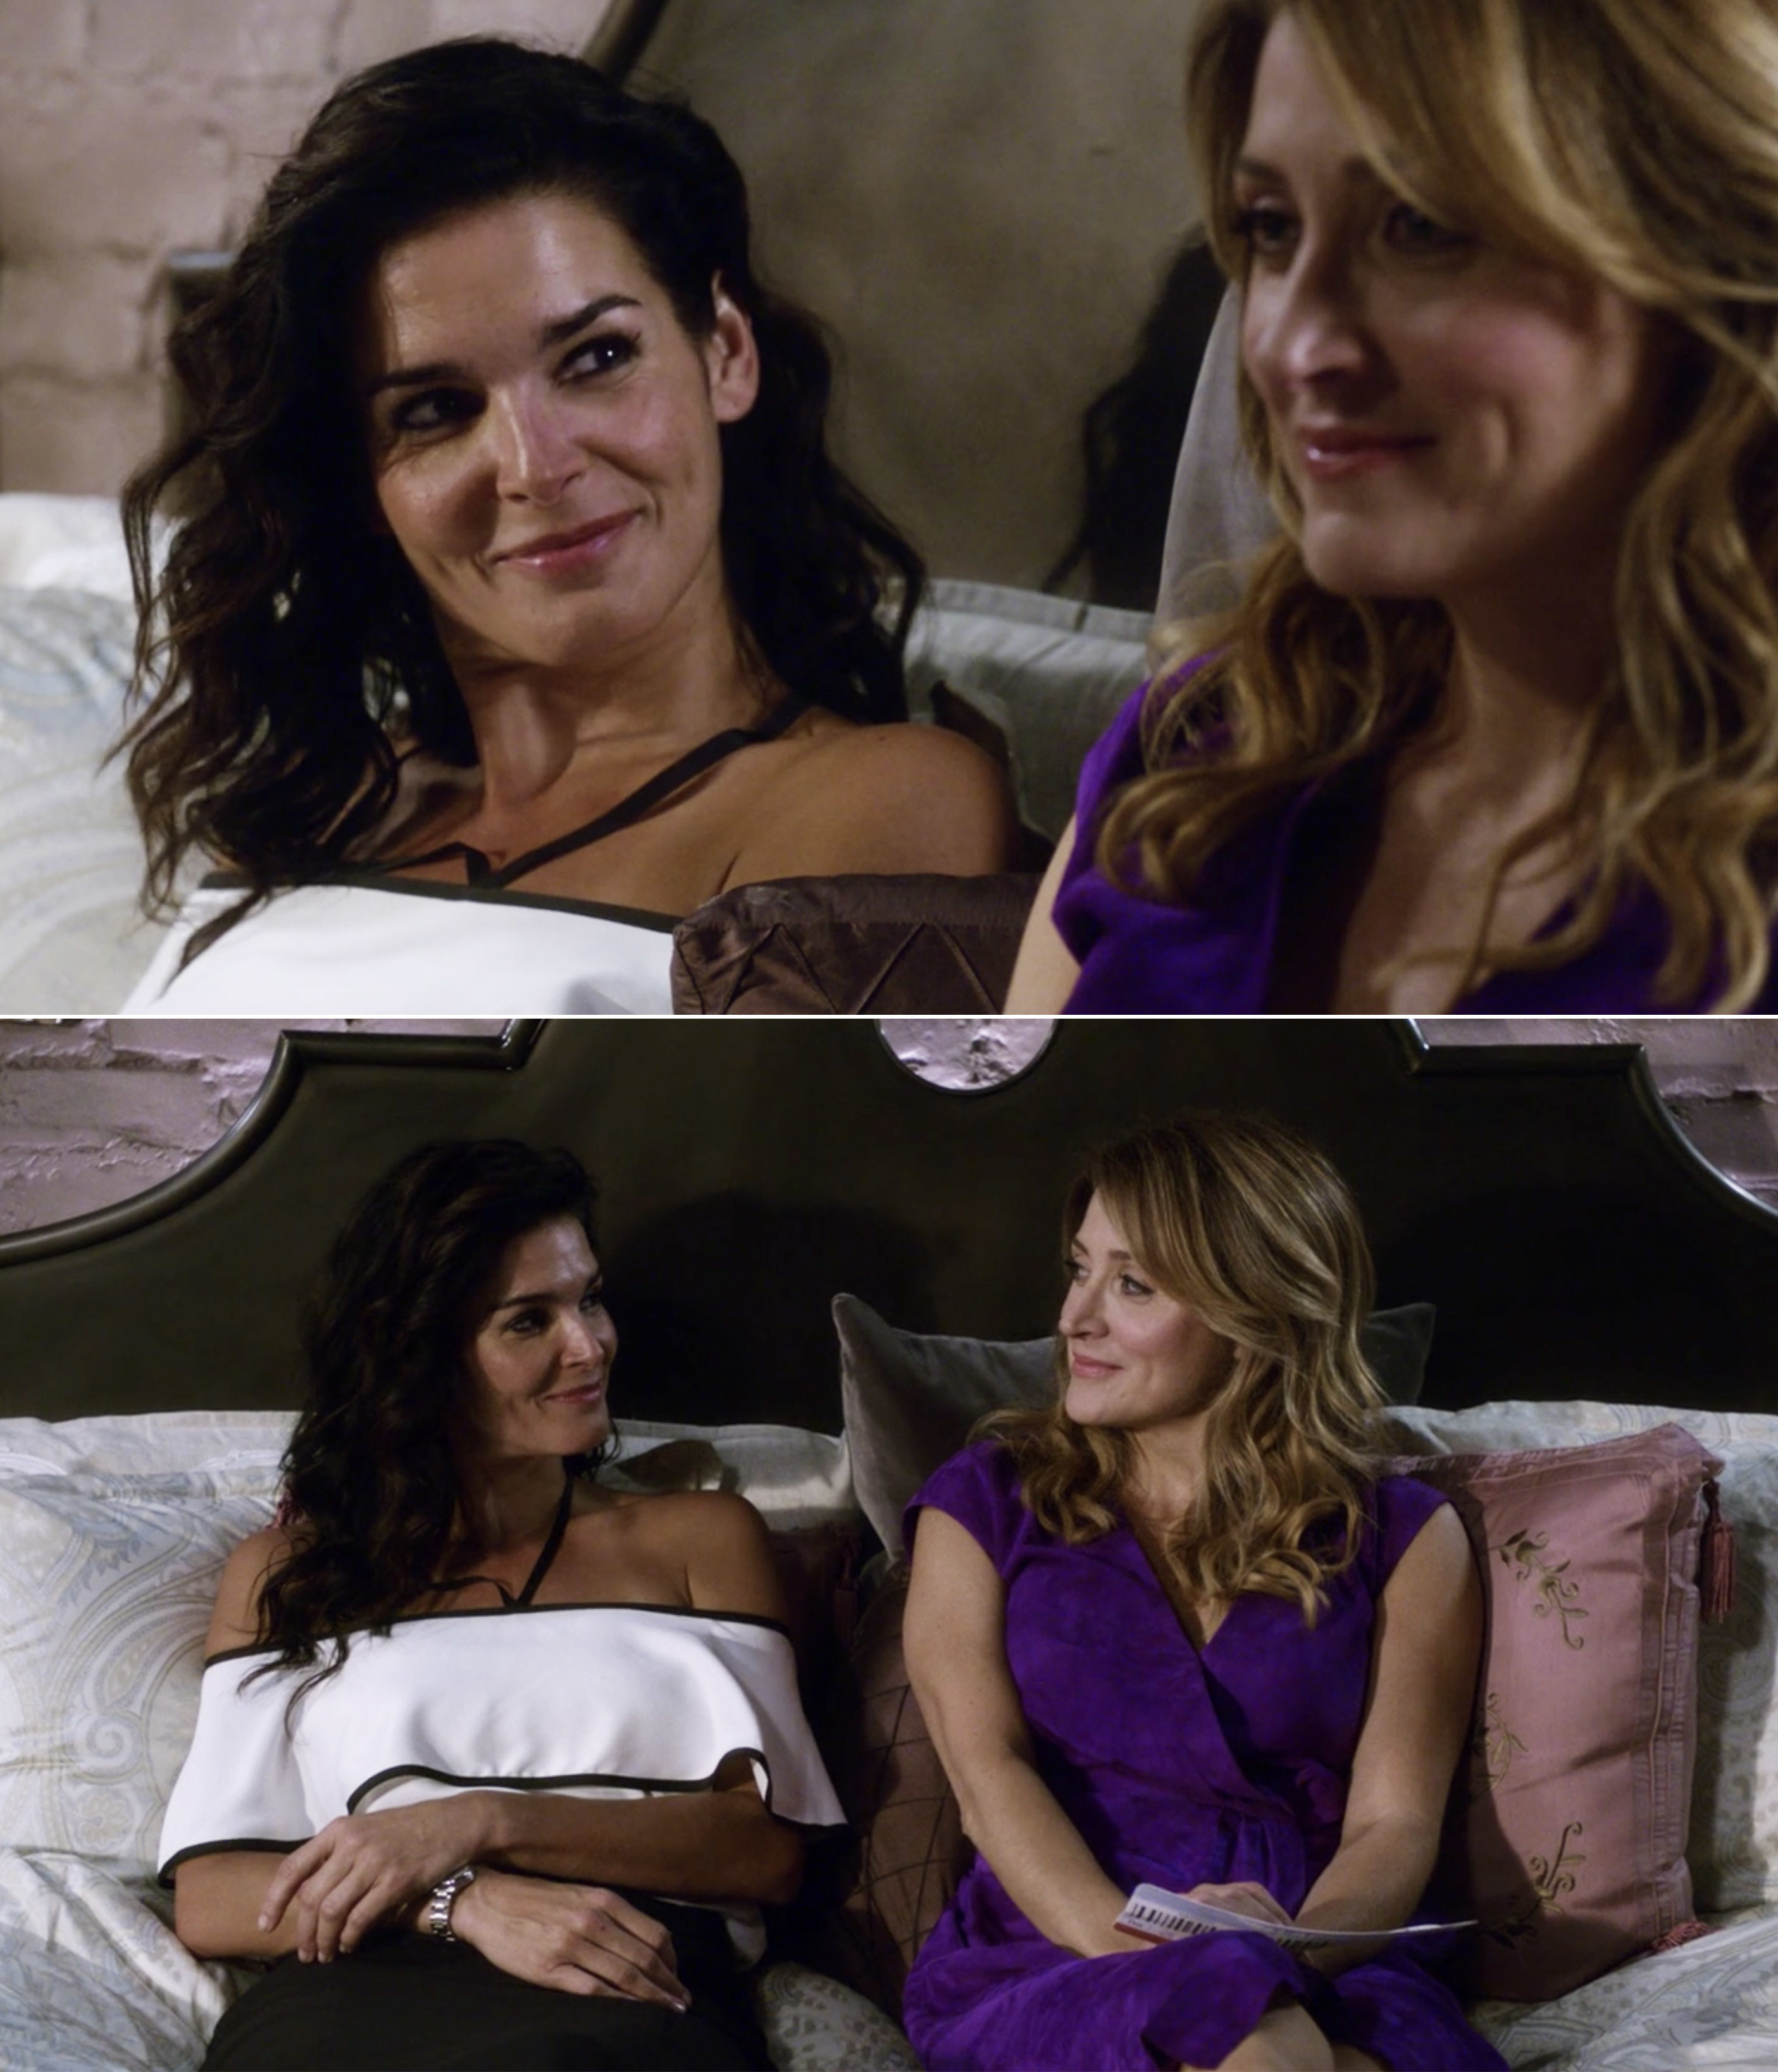 Jane and Maura sitting next to each other in bed